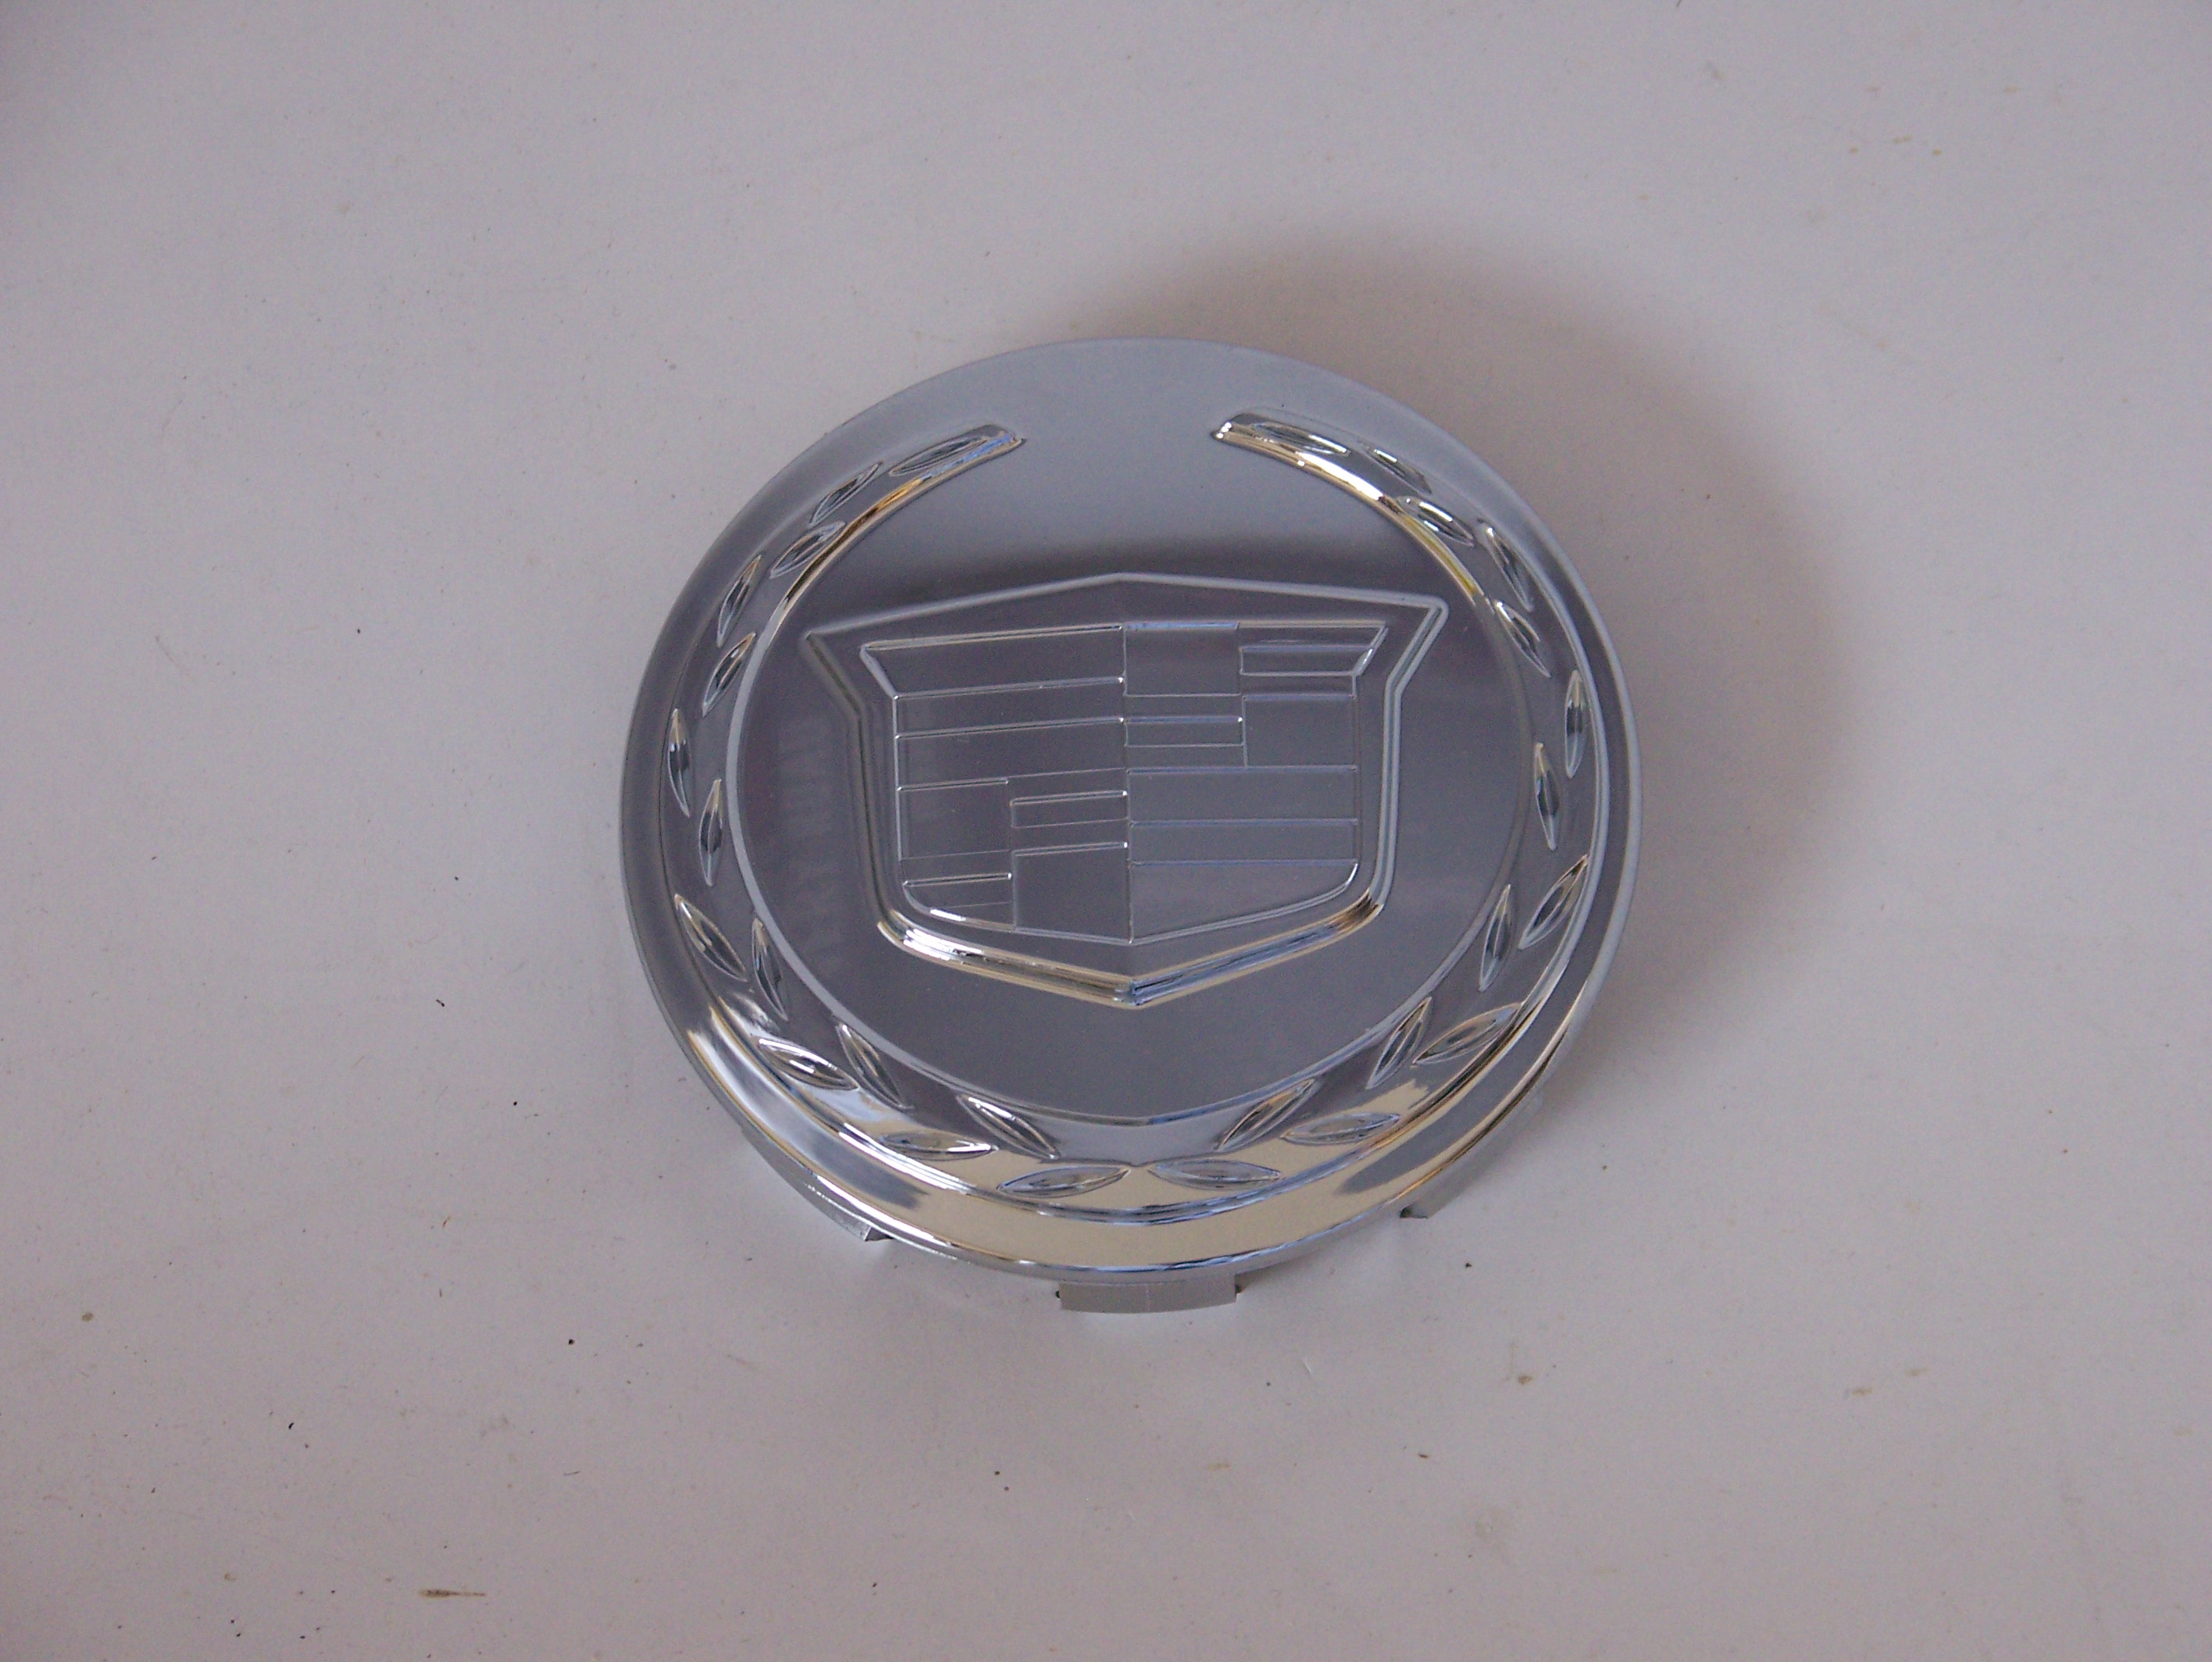 Cadillac Escalade 07-14 Center Cap 5328 P/N 9595891